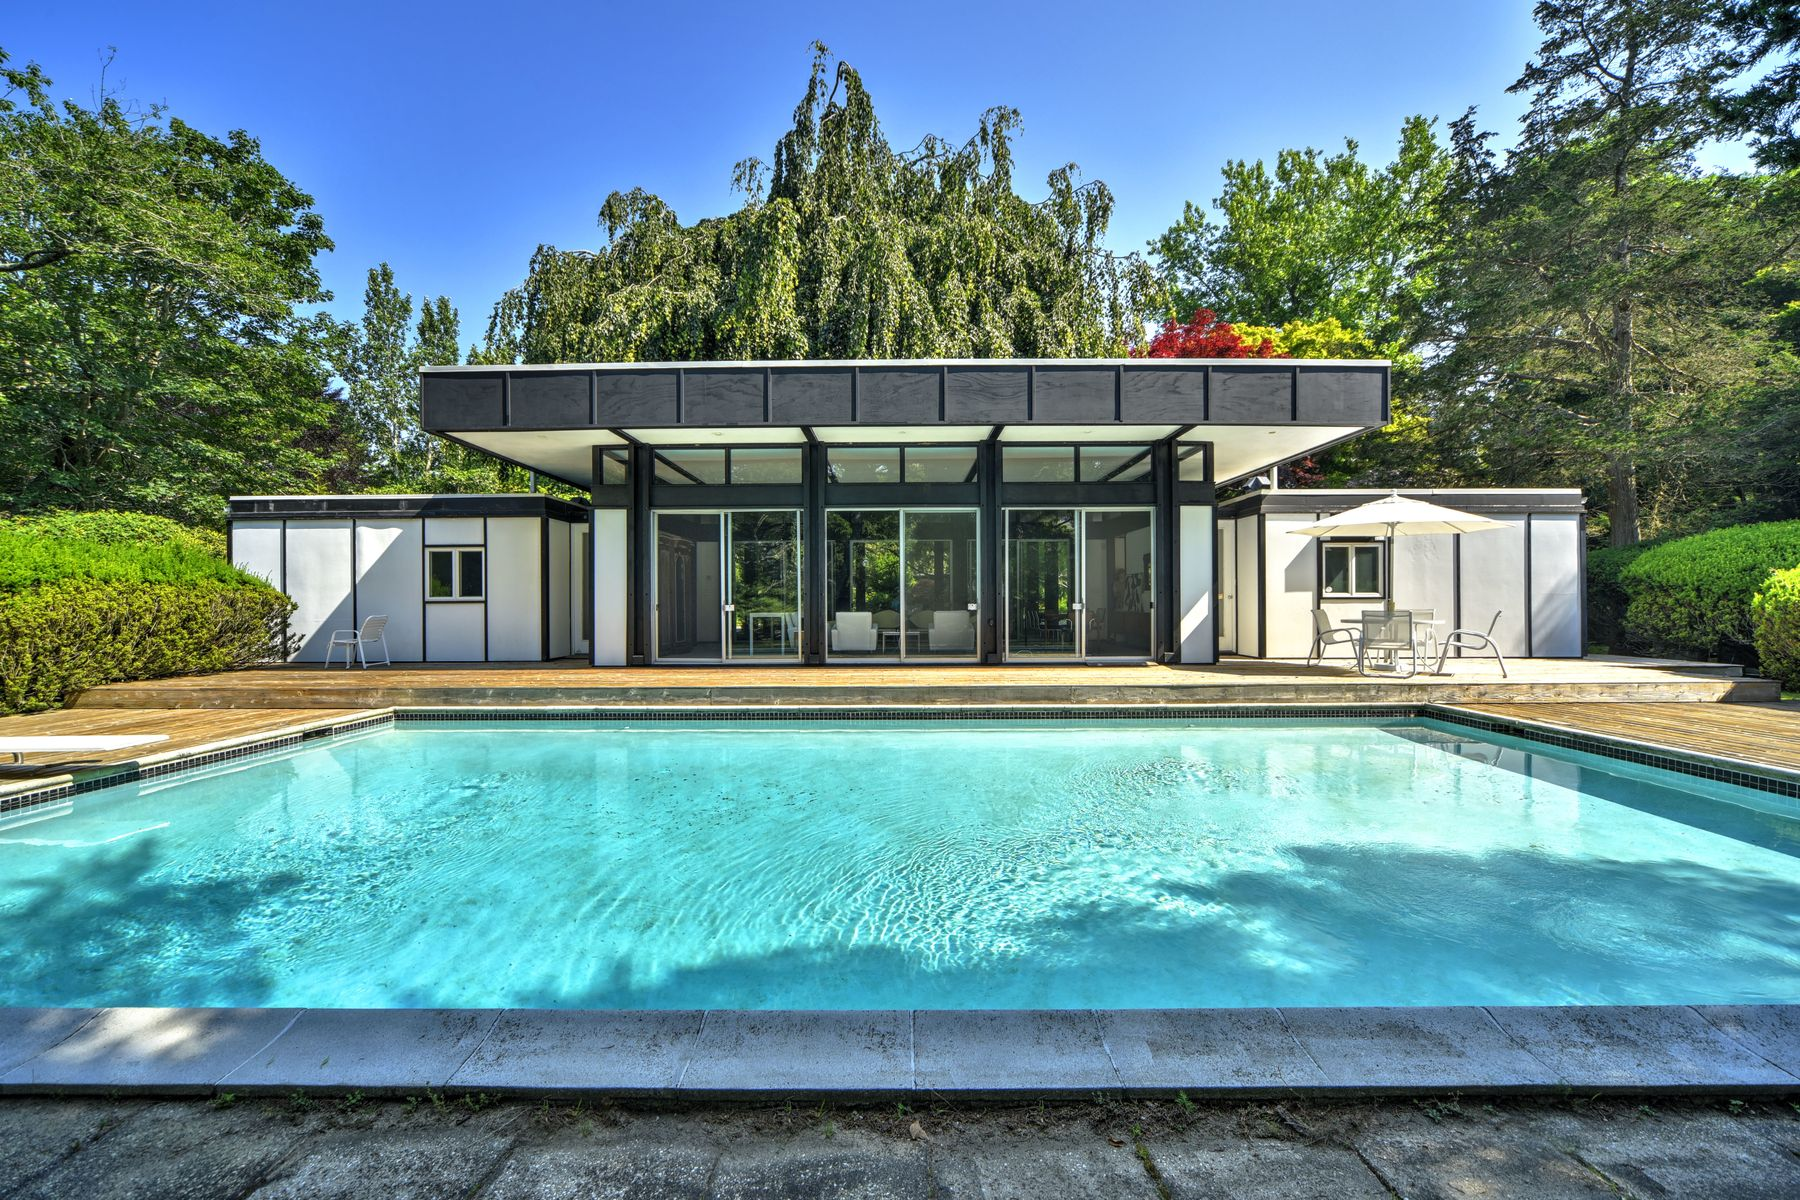 Single Family Home for Active at THE ROBERT SCULL HOUSE 123 Georgica Road East Hampton, New York 11937 United States